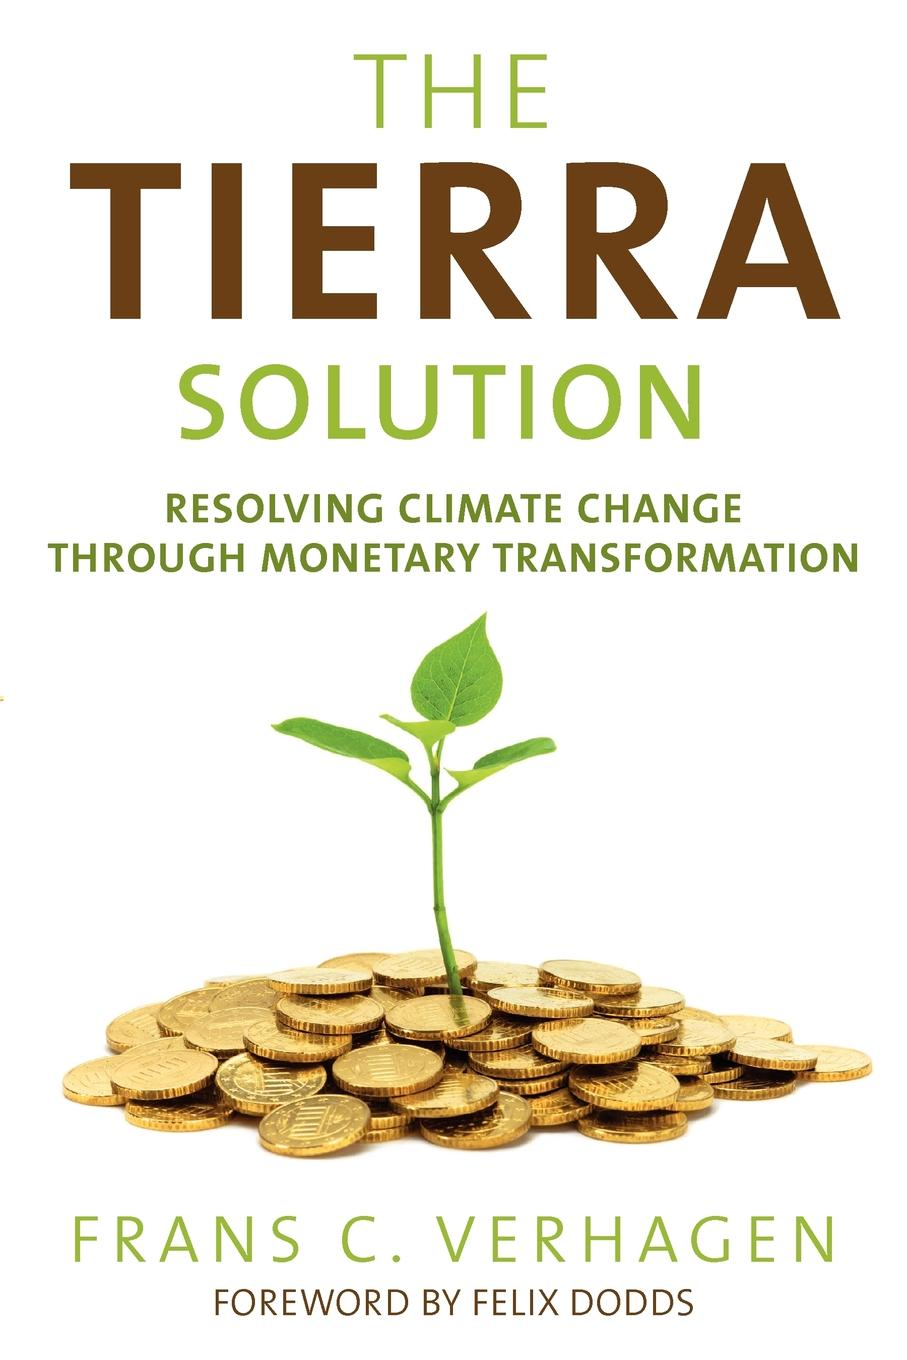 http://www.amazon.com/Tierra-Solution-Resolving-Monetary-Transformation/dp/1616406887/ref=sr_1_1?s=books&ie=UTF8&qid=1377484902&sr=1-1/cosimo-20